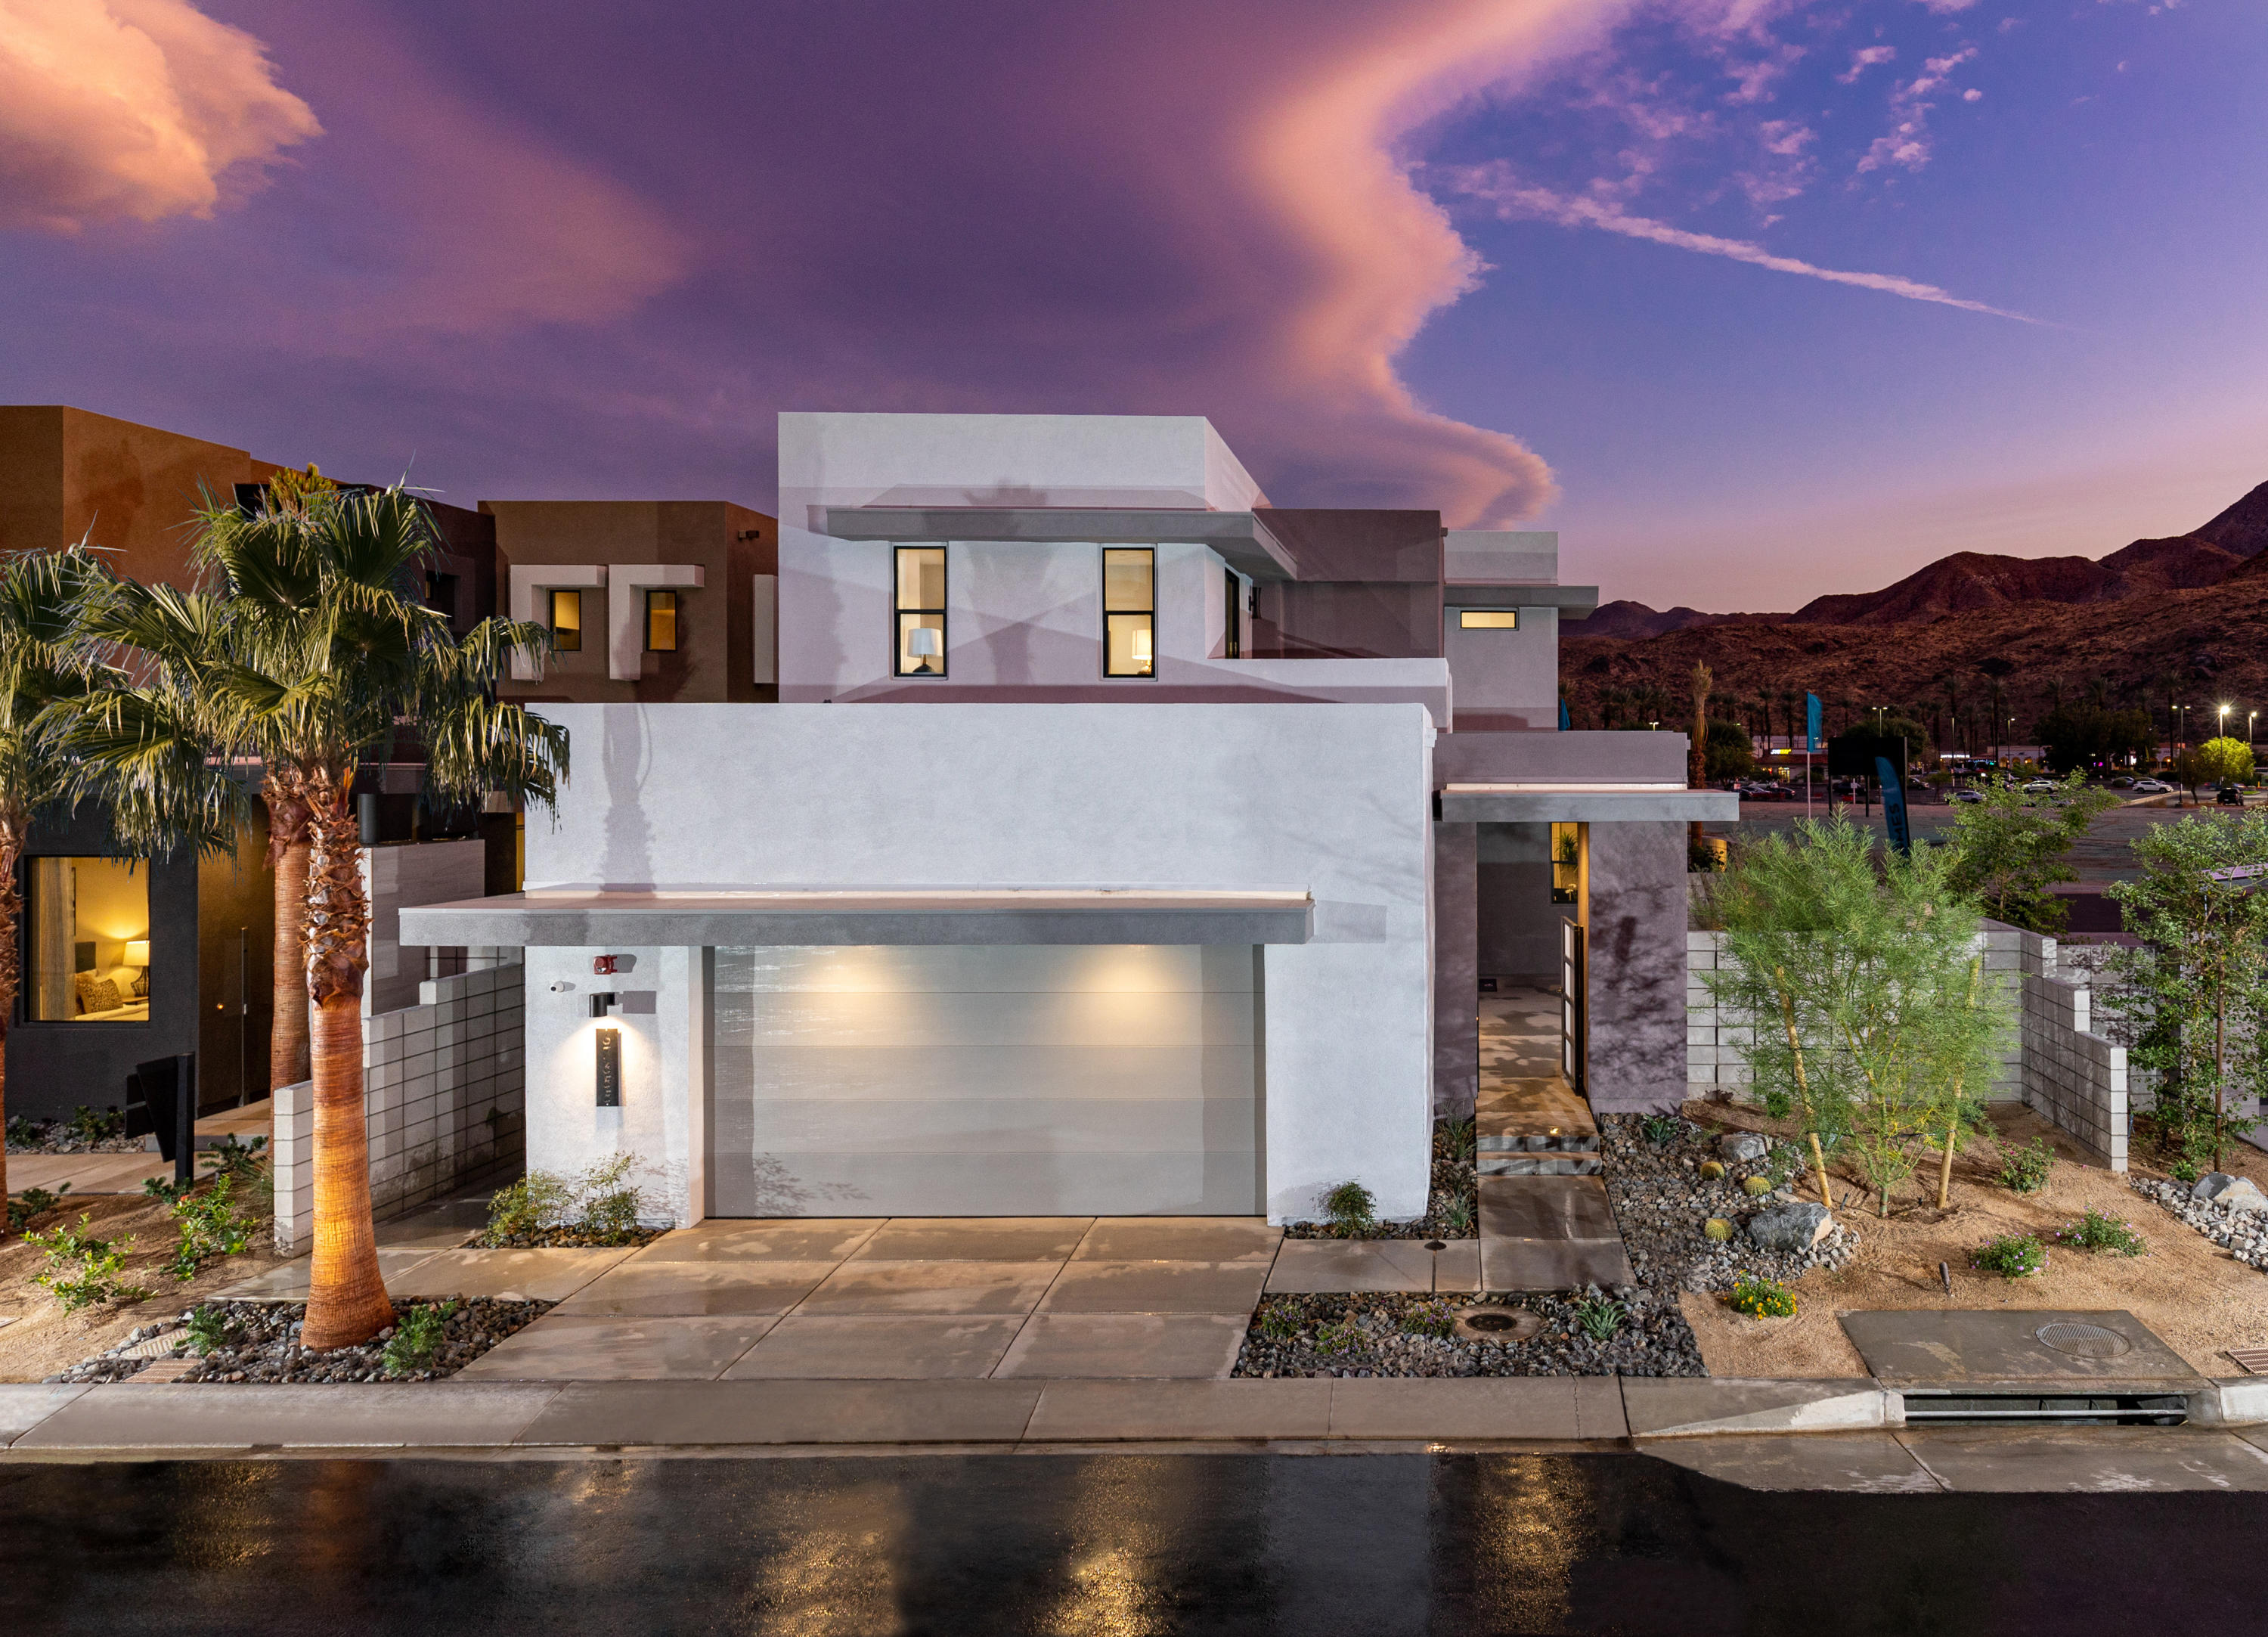 Lot 39, Tribeca floor plan. Welcome to the District East, a small new home community of just 43 homes on the edge of Palm Springs and Cathedral City. This home features 3 bedrooms, 3 baths and 4 outdoor living areas to enjoy the beautiful mountain views!!! 2 large upper balconies, a large front courtyard and a private back patio with spa/spool included! Open concept 21 Century living, 8' low-e glass triple sliding glass doors that lead out to a beautiful patio. STANDARD - 24x24 designer porcelain tile flooring in all living areas and designer carpet in the bedrooms. Pre-wired for speakers in great room, outdoor living, and master bedroom. Social Kitchen with quartz countertops and backsplash. All Kitchen appliances included. The list goes on and on, these homes really are a must see. Call to schedule an appointment ! Reserve your new home today!! Photos are of model home** colors vary.